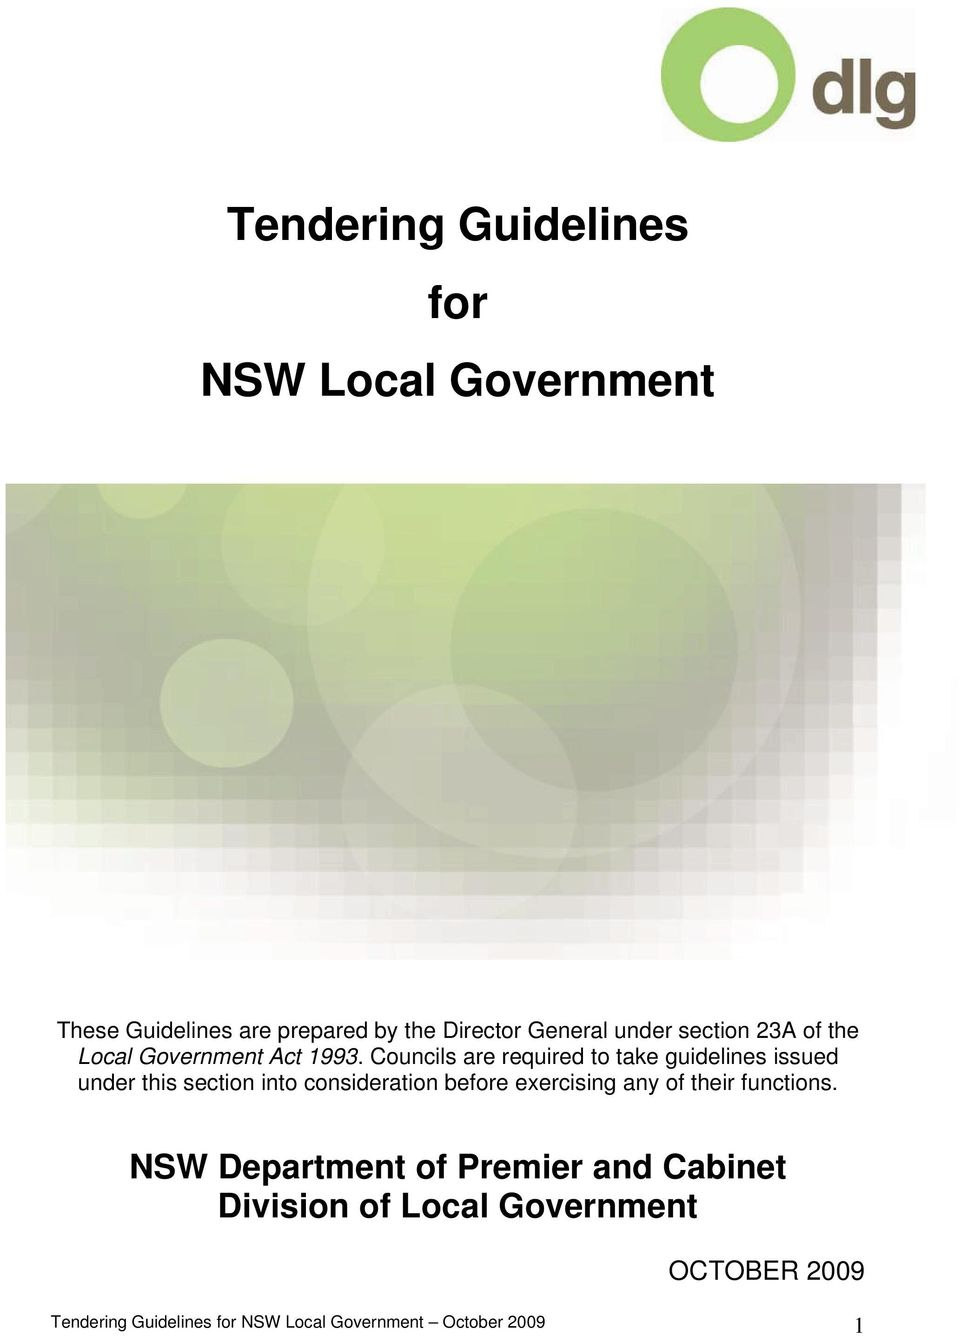 Councils are required to take guidelines issued under this section into consideration before exercising